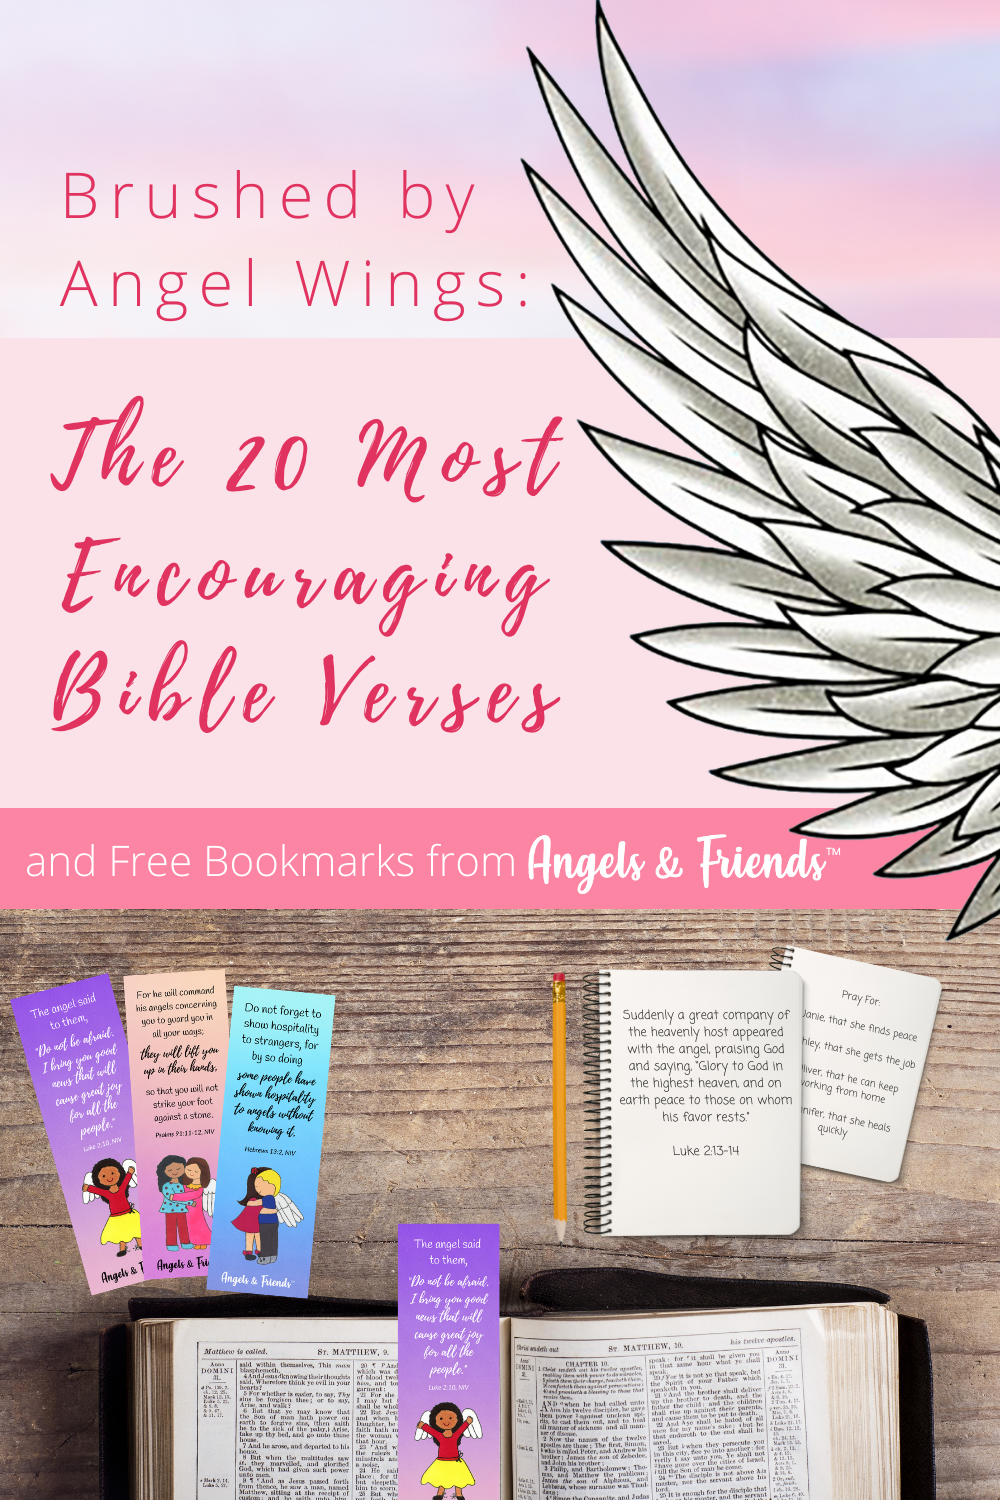 Brushed by Angel Wings: The 20 Most Encouraging Bible Verses and Free Bookmarks from Angels & Friends